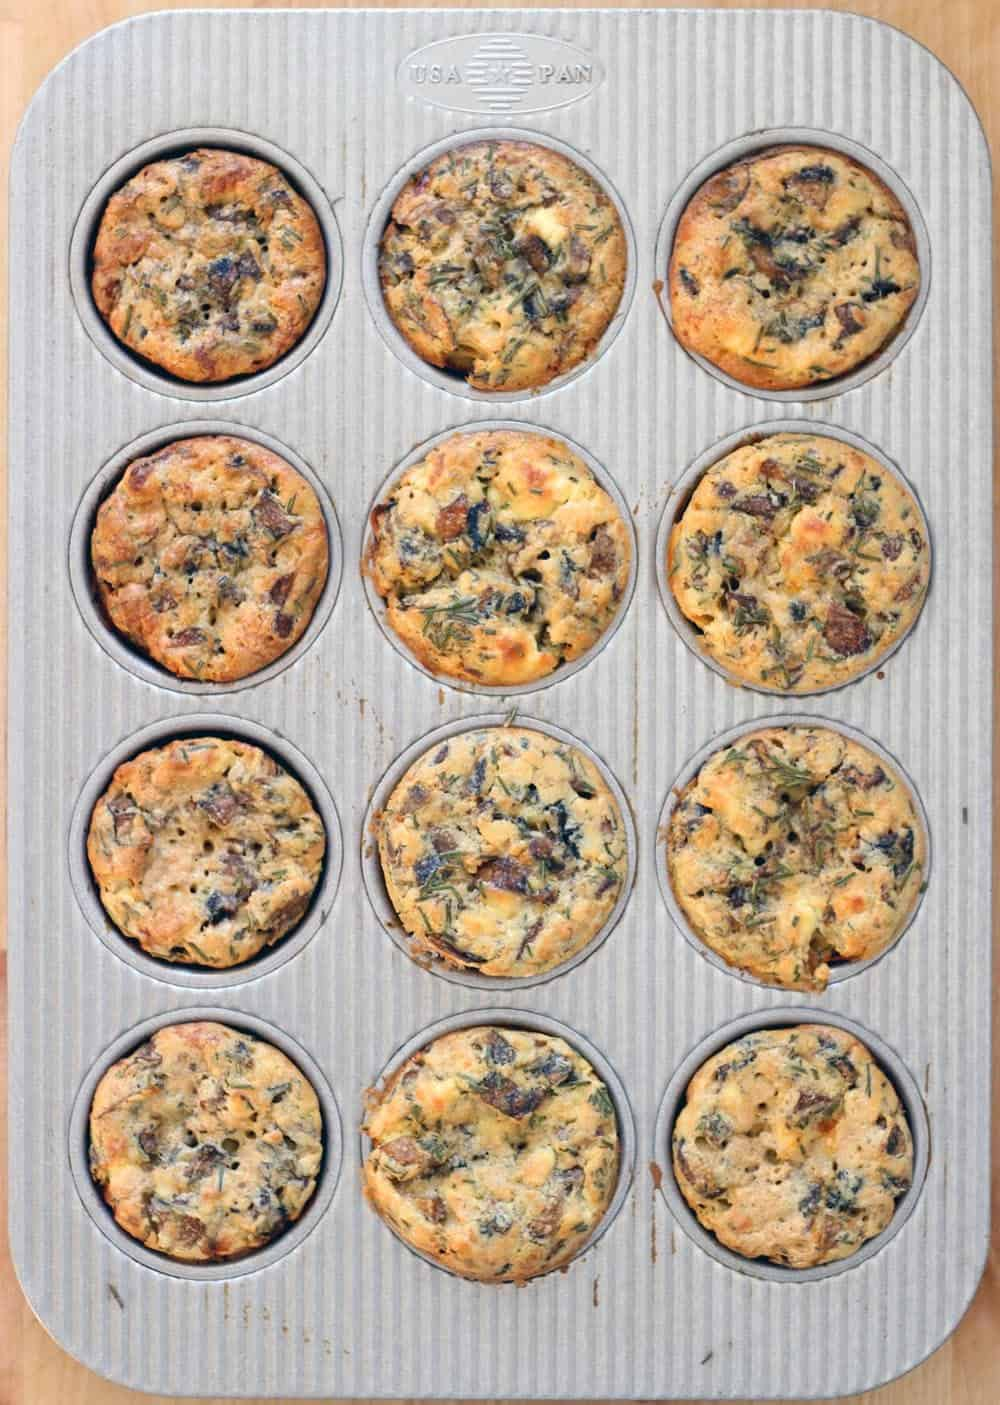 Bird's eye view of a muffin pan filled with mini quiches.